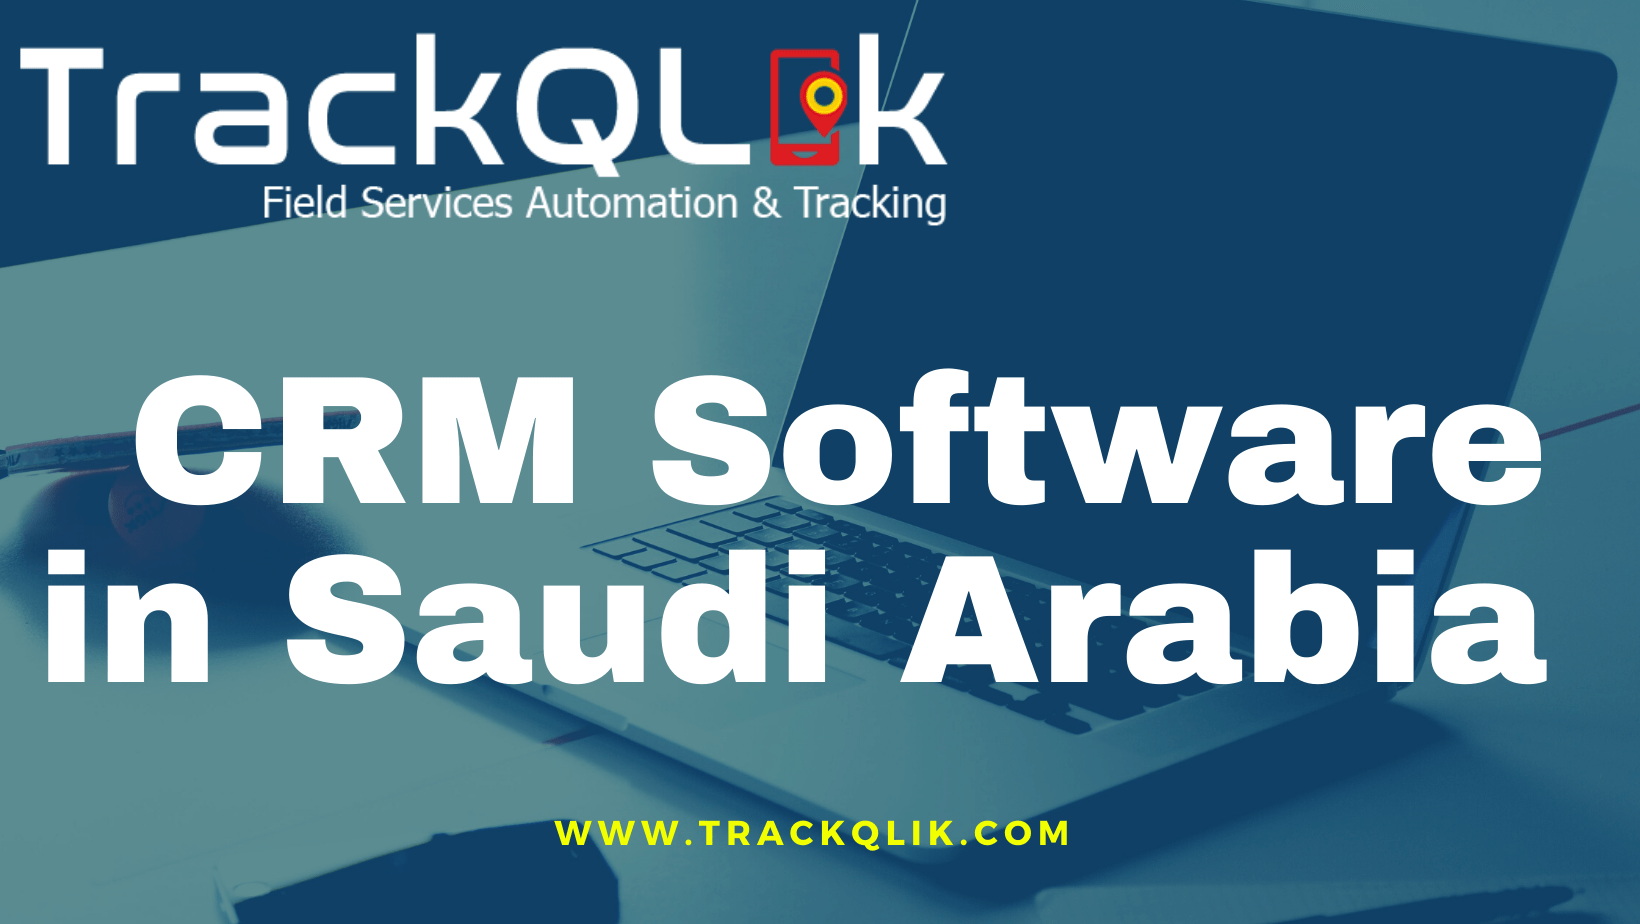 What Type of Companies use CRM Software in Saudi Arabia